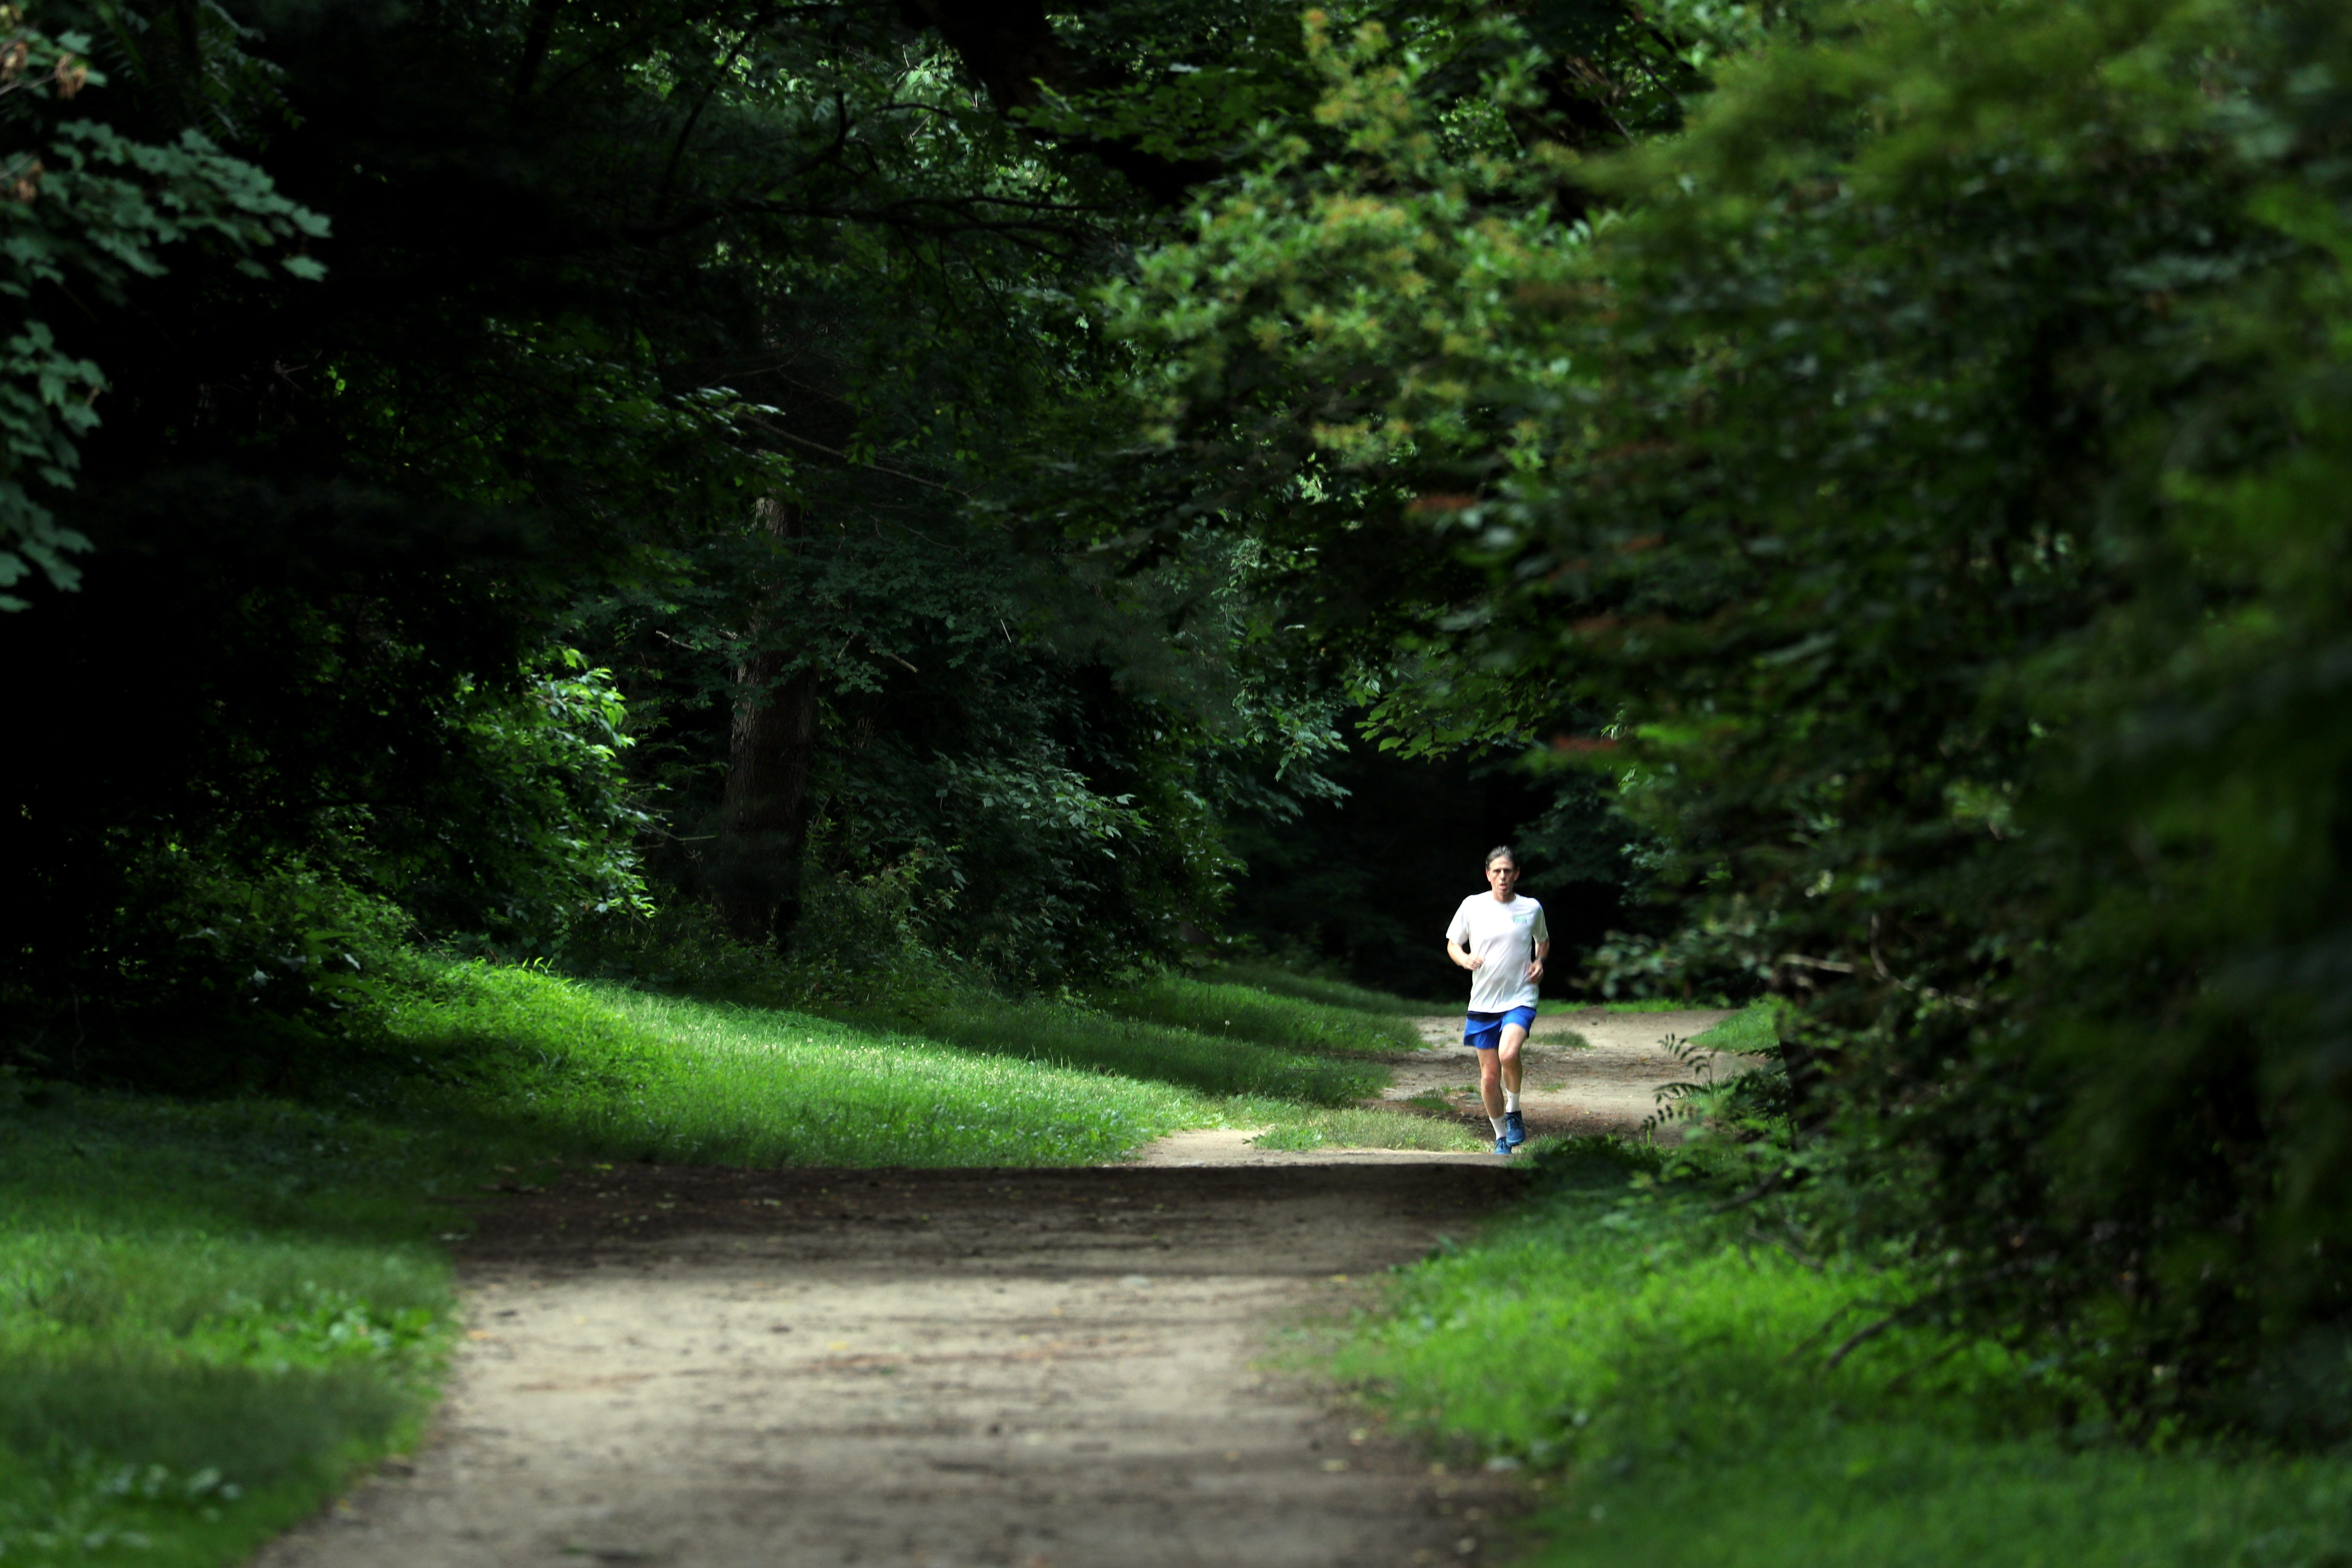 Video: A walk through history on the Old Croton Aqueduct Trail